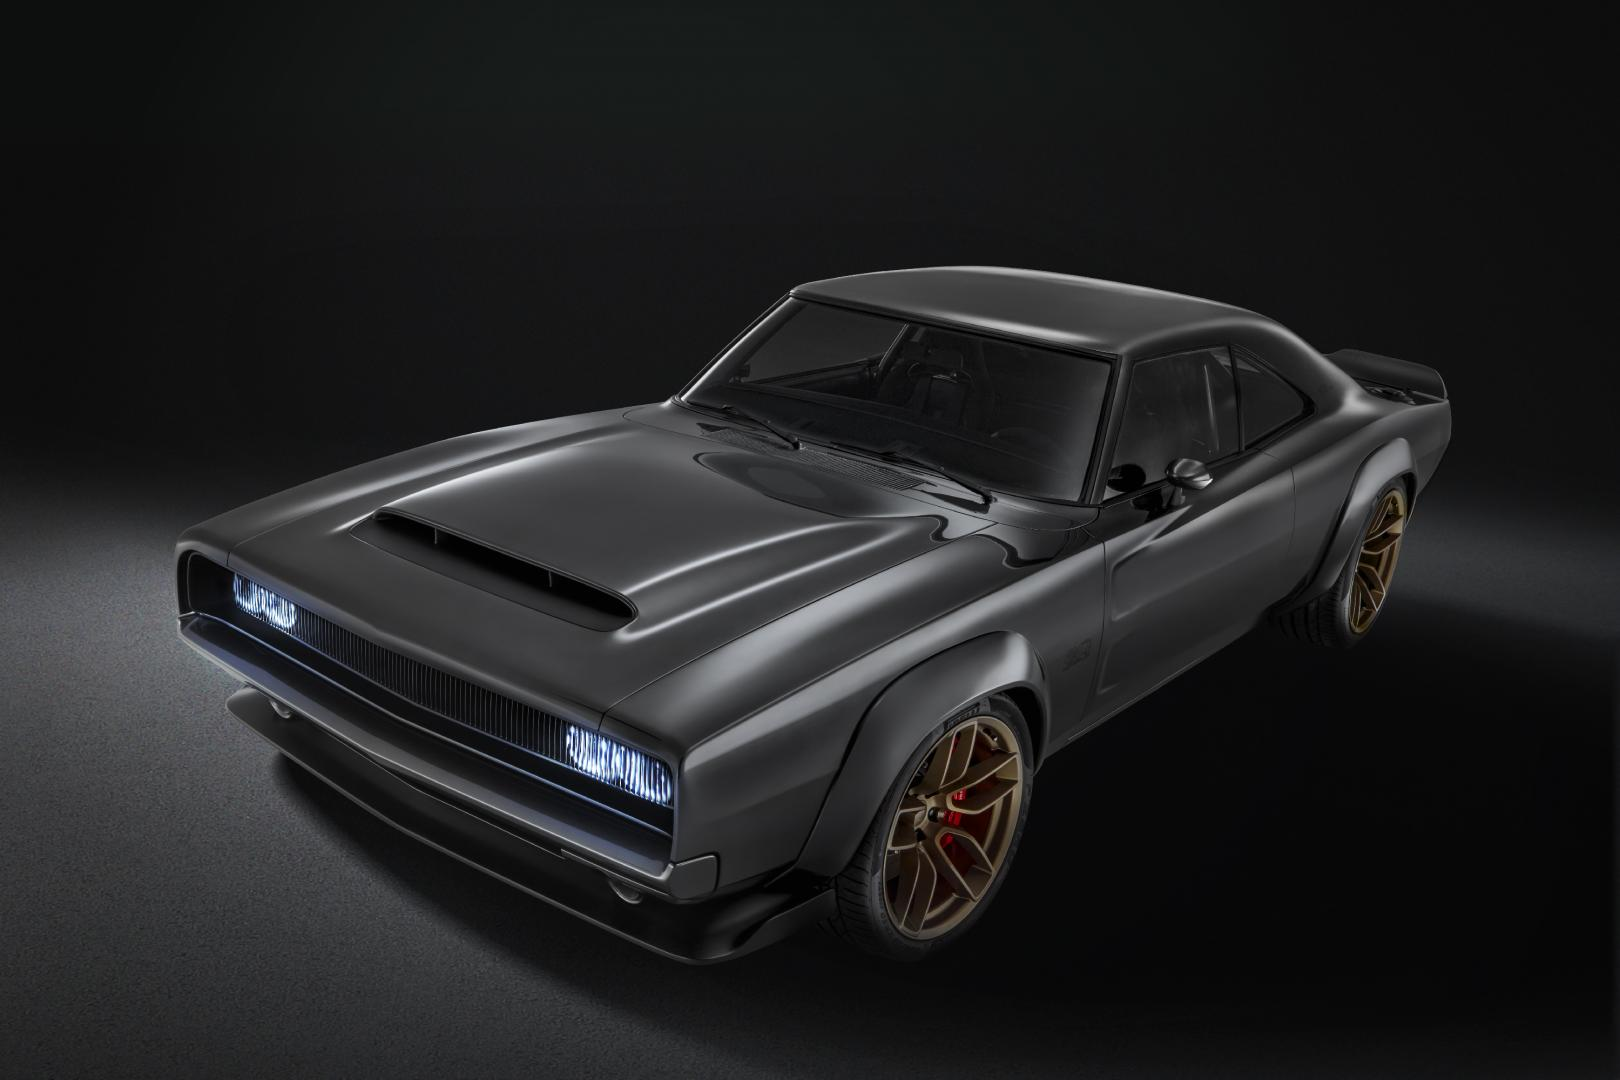 The Dodge Super Charger Charger